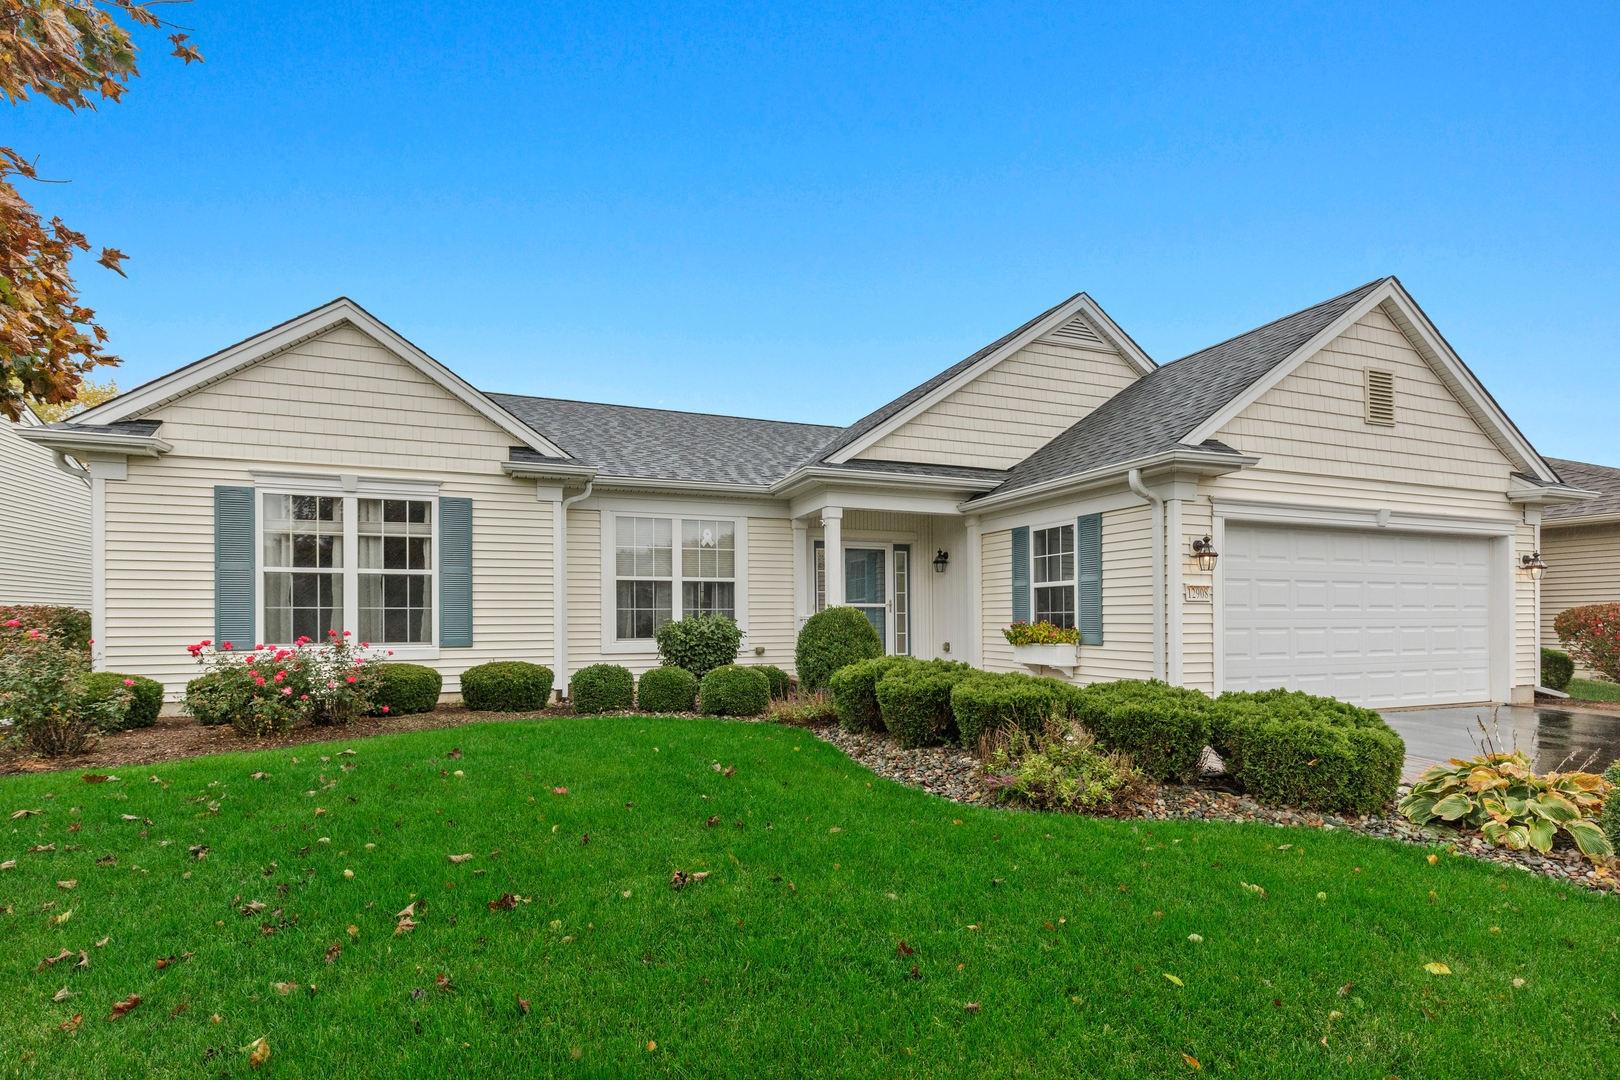 Photo for 12908 Timber Creek Drive, Huntley, IL 60142 (MLS # 10898537)